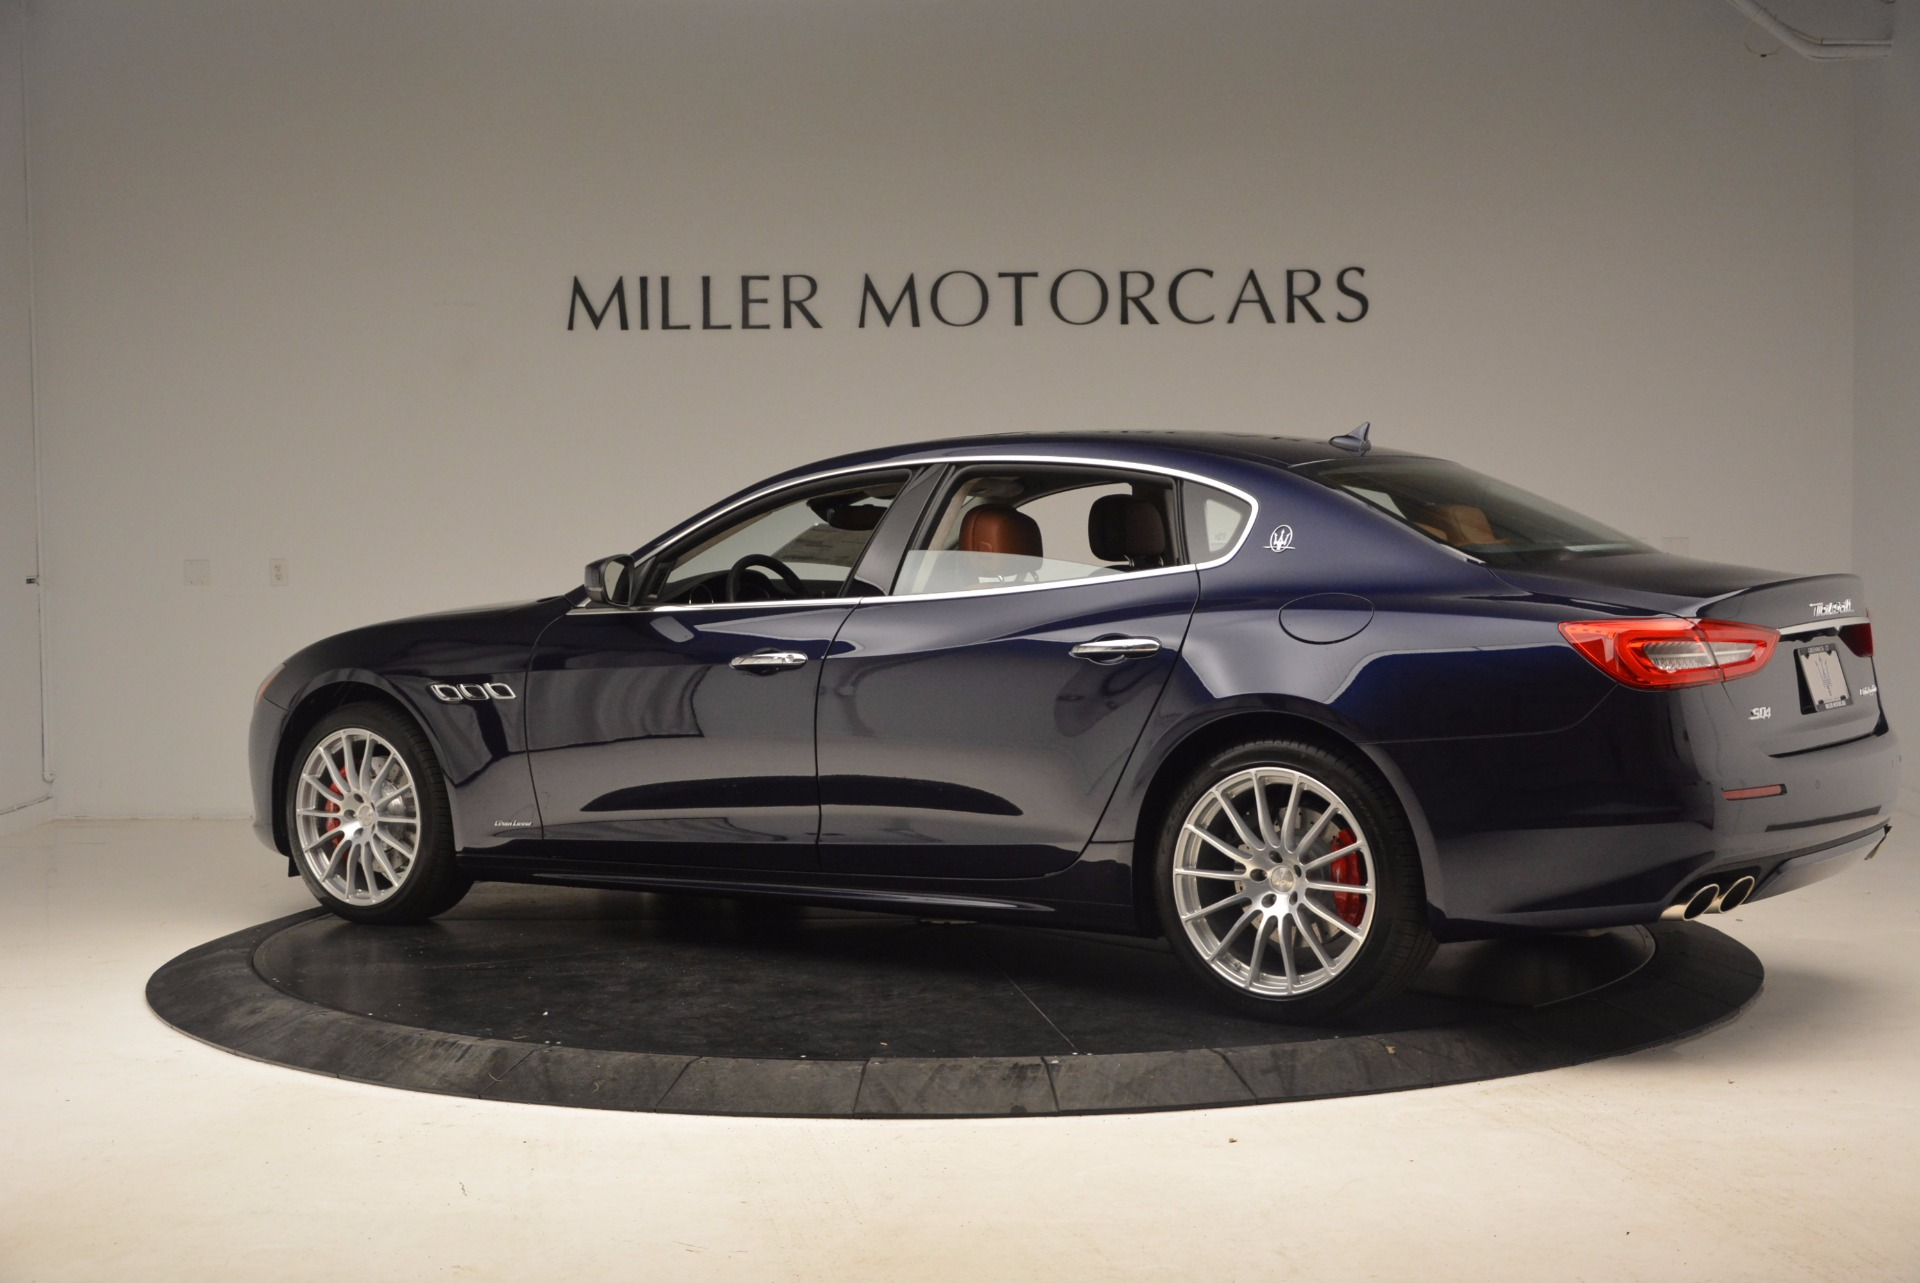 New 2018 Maserati Quattroporte S Q4 GranLusso For Sale In Greenwich, CT 1700_p4